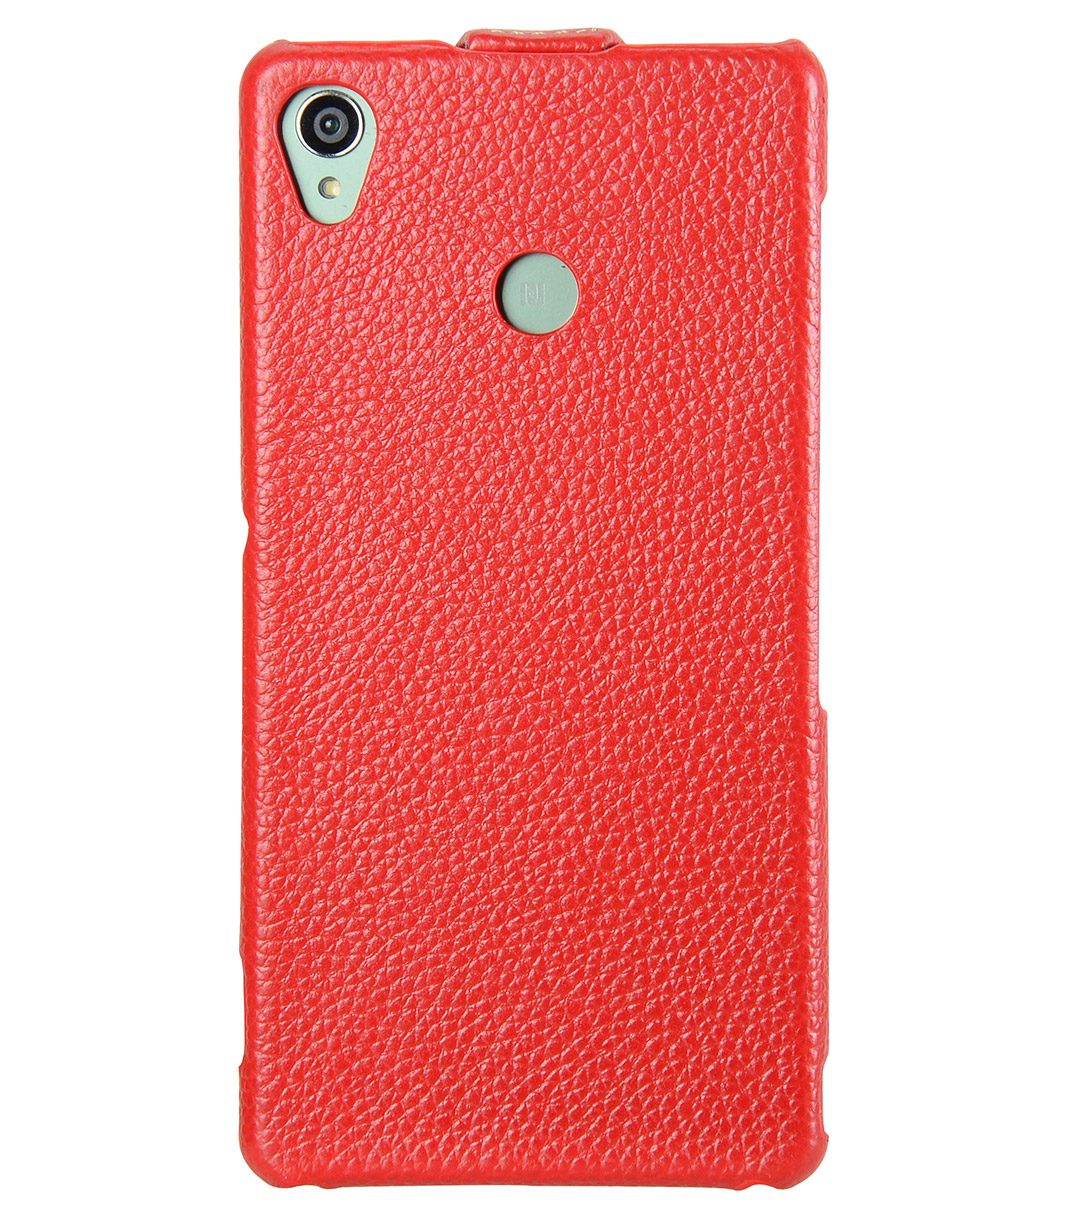 Melkco Premium Leather Case for Sony Xperia Z3 D6653 - Jacka Type (Red LC)